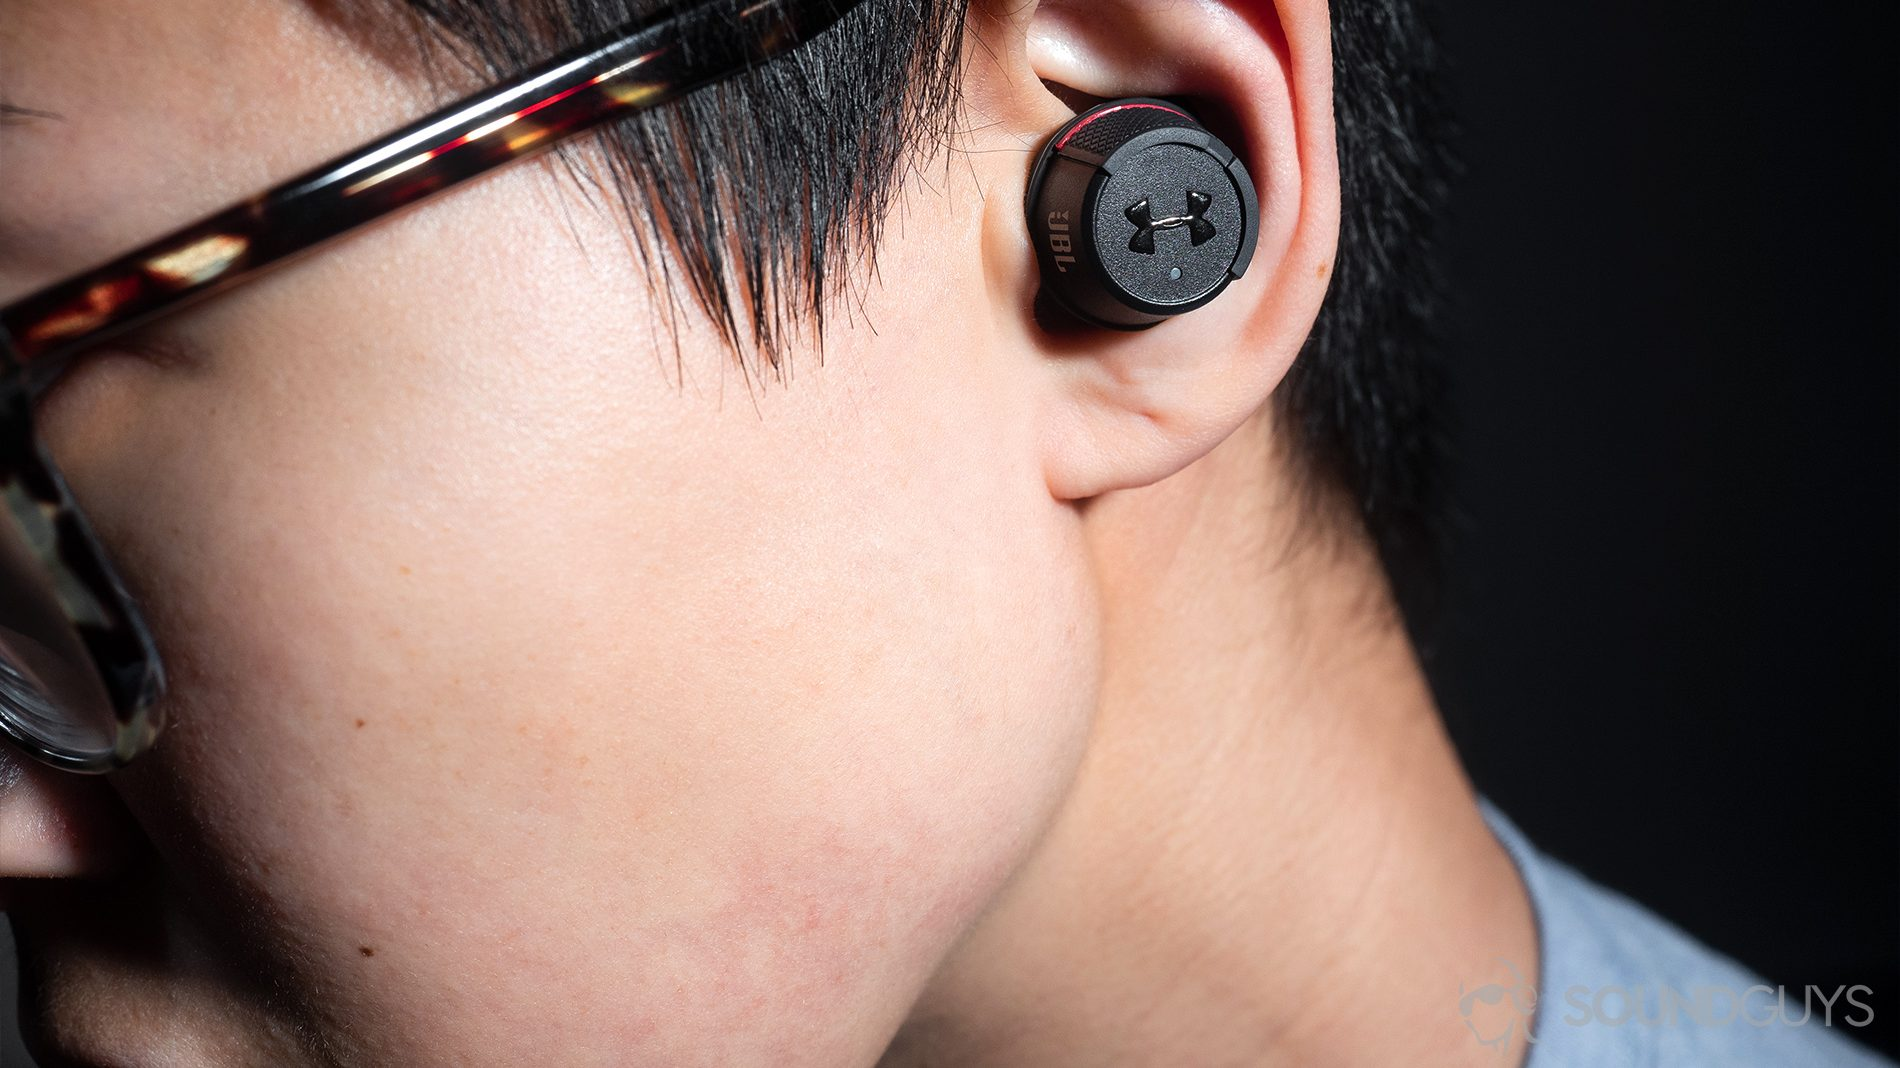 4ef37e4a65c AirPods alternatives - Under Armour True Wireless Flash JBL: A woman  wearing the earbuds.